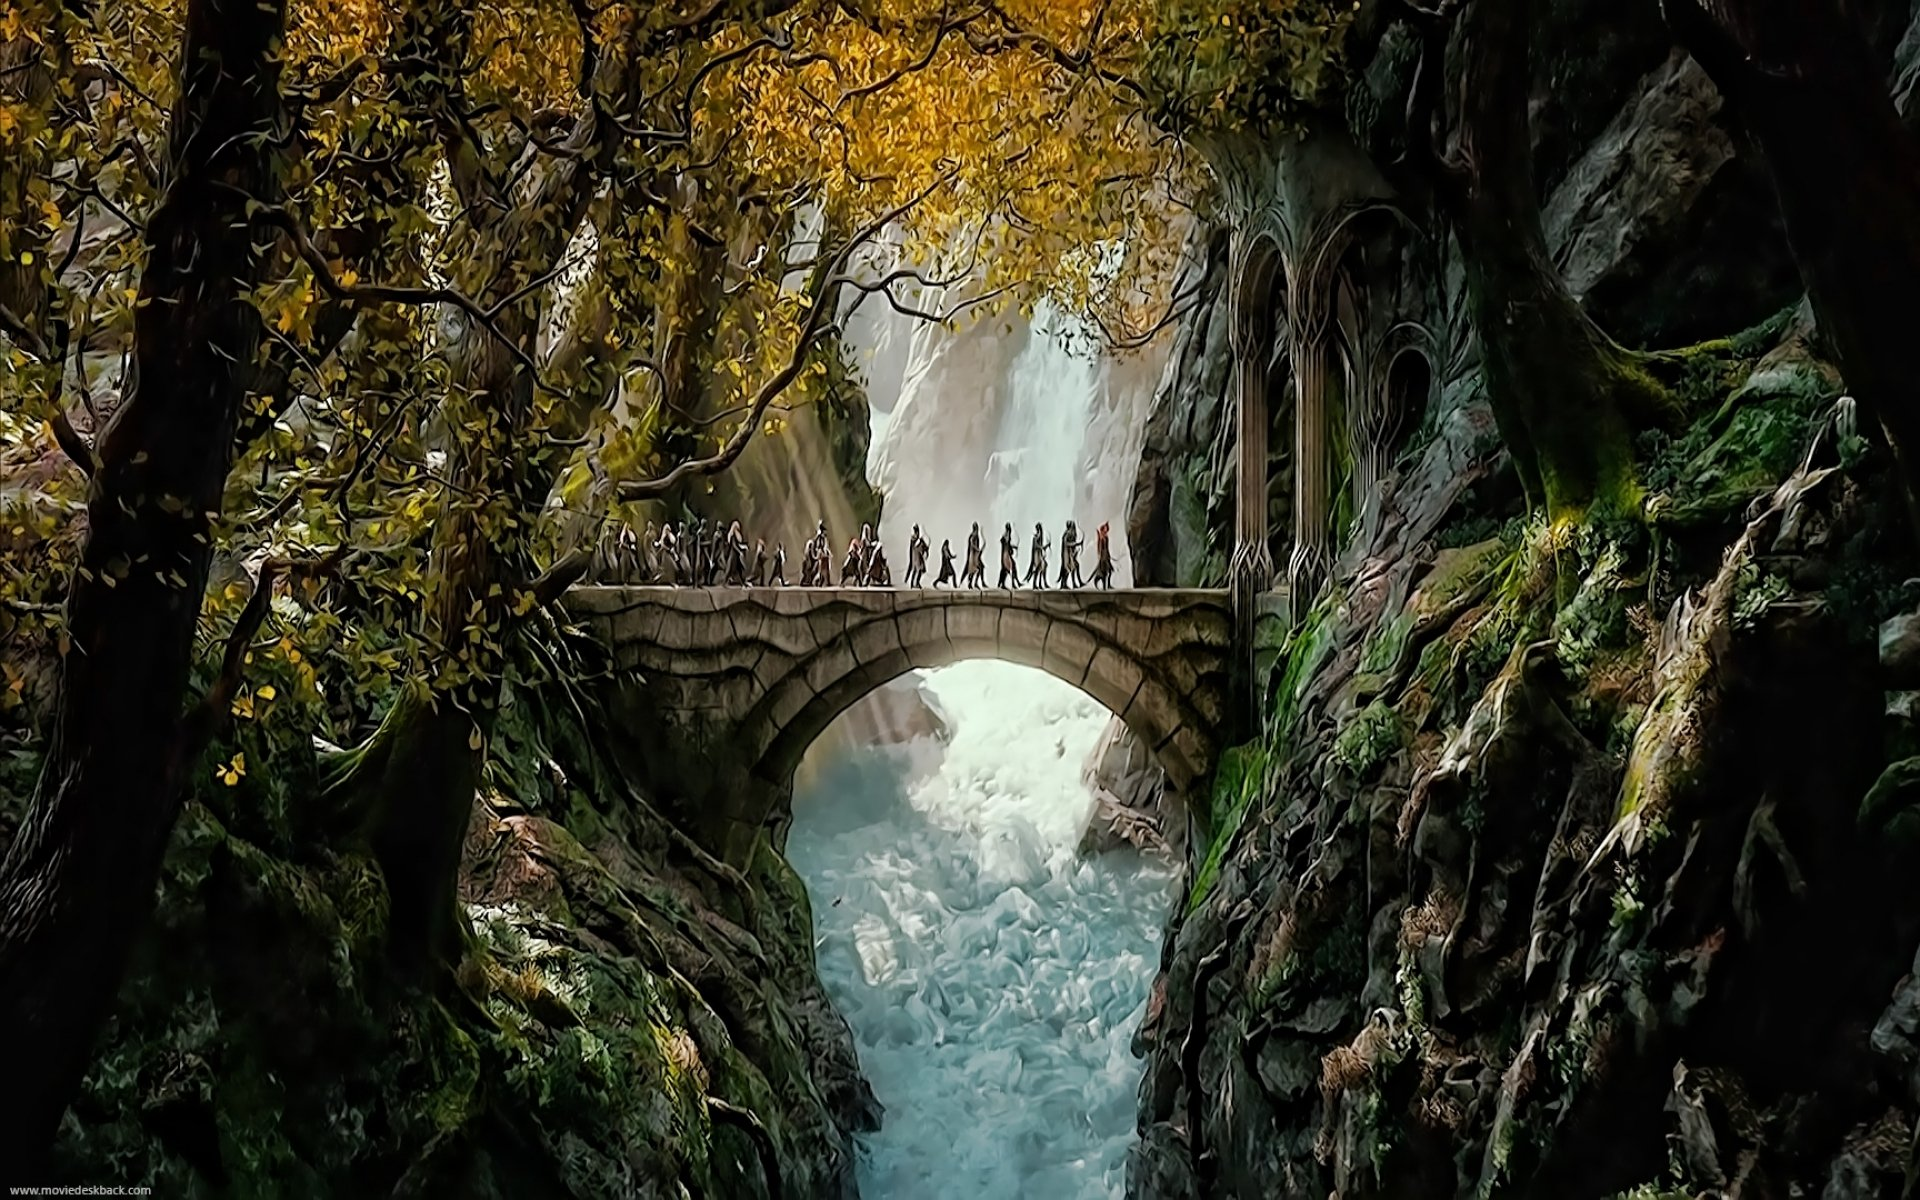 Lord of the rings wallpapers hd pixelstalk net for House image full hd